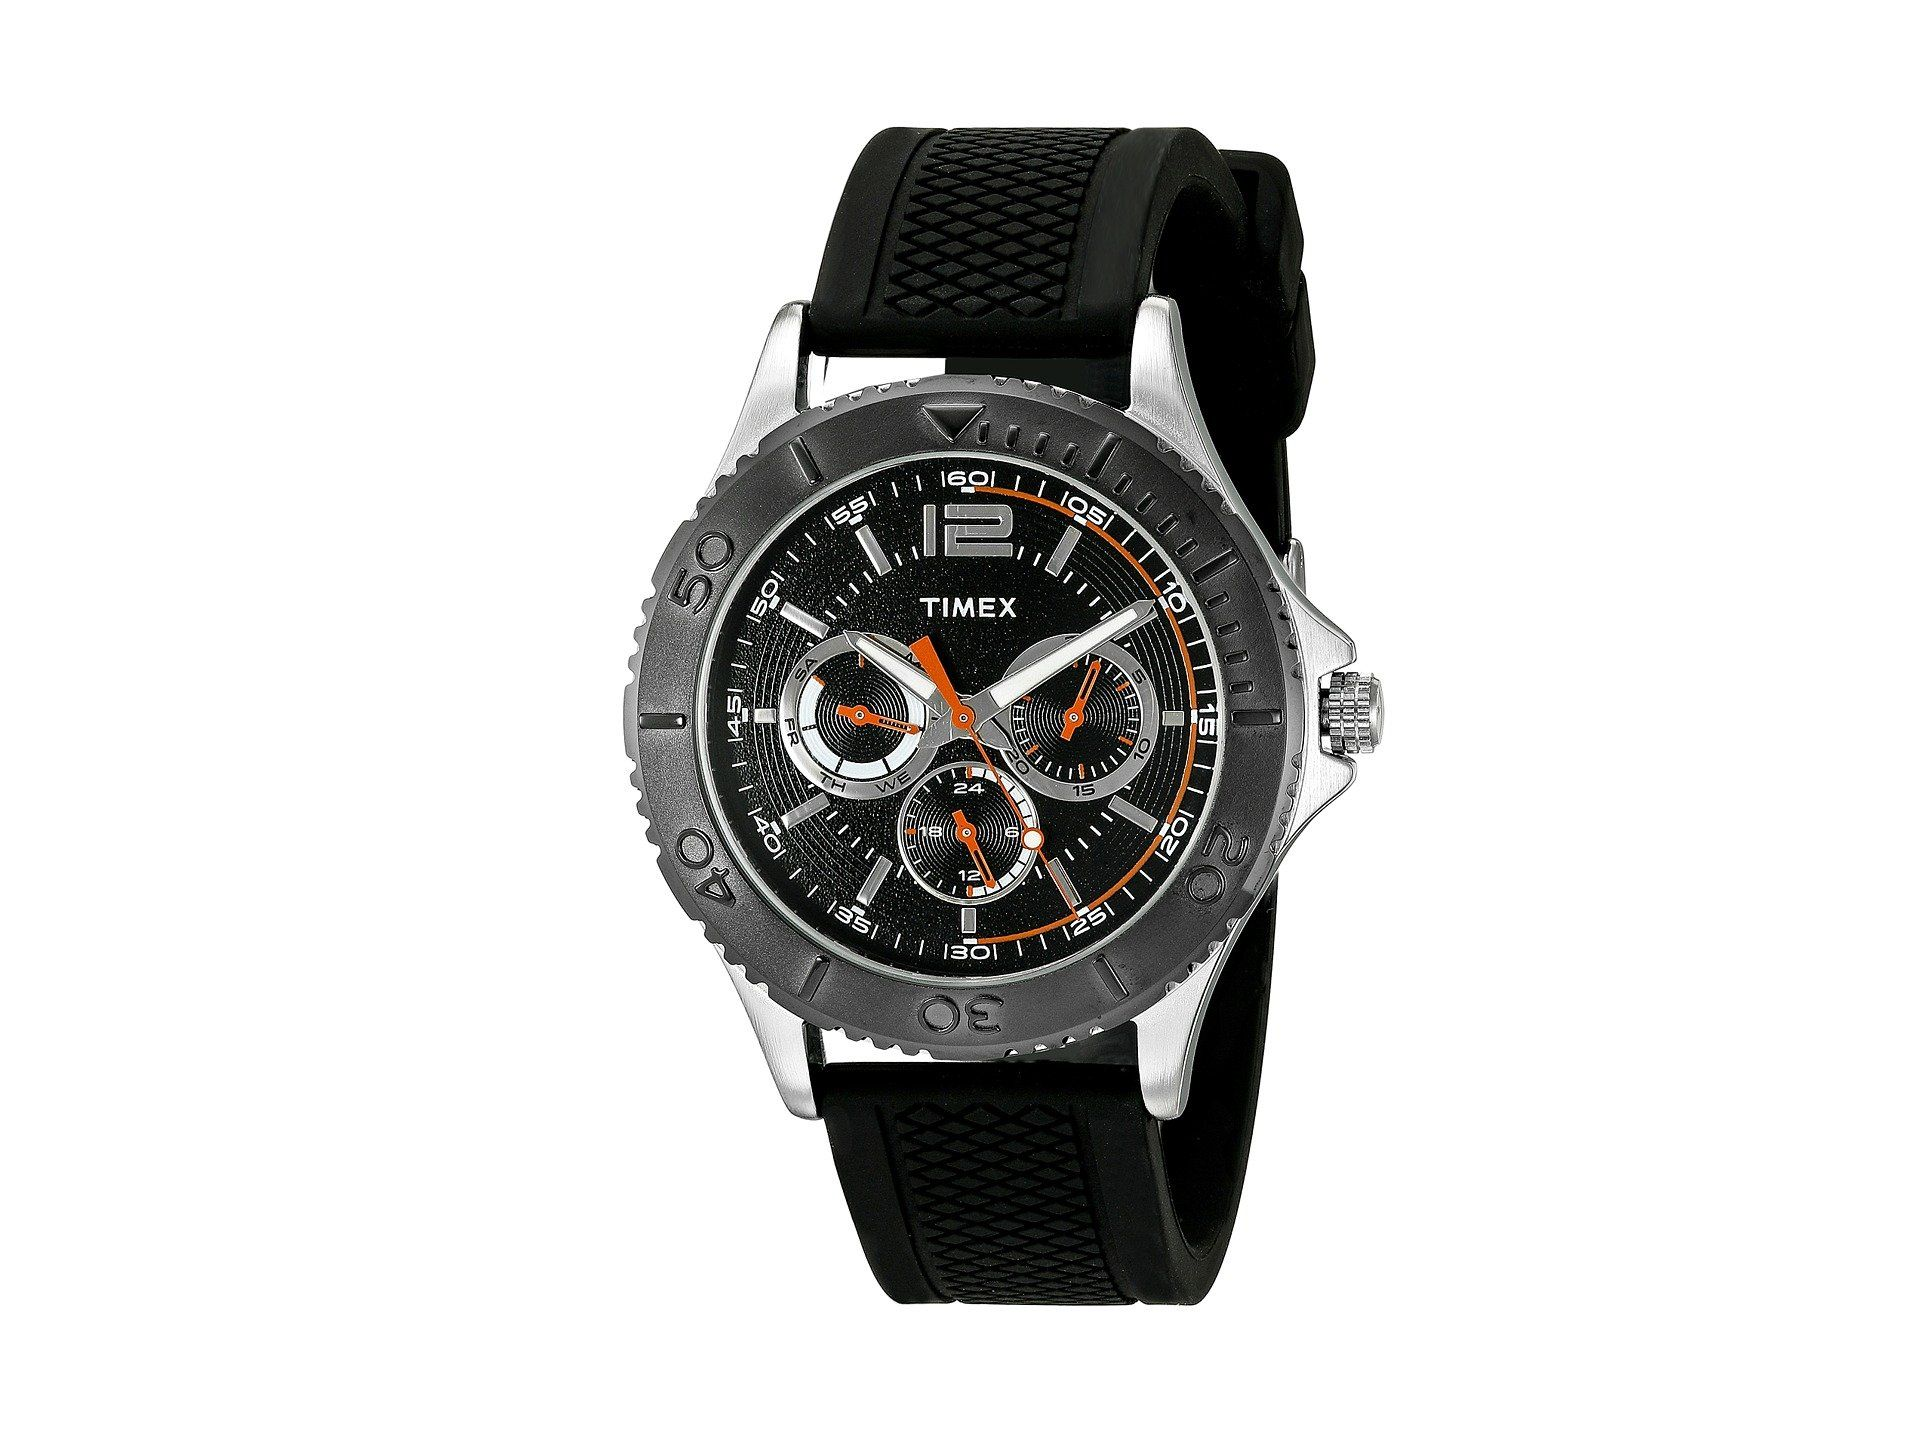 Mens Watches Timex Tw2p875009j Black Dial Analog Quartz Casio G Shock Gw 9400dcj 1 Watch With Silicone Strap